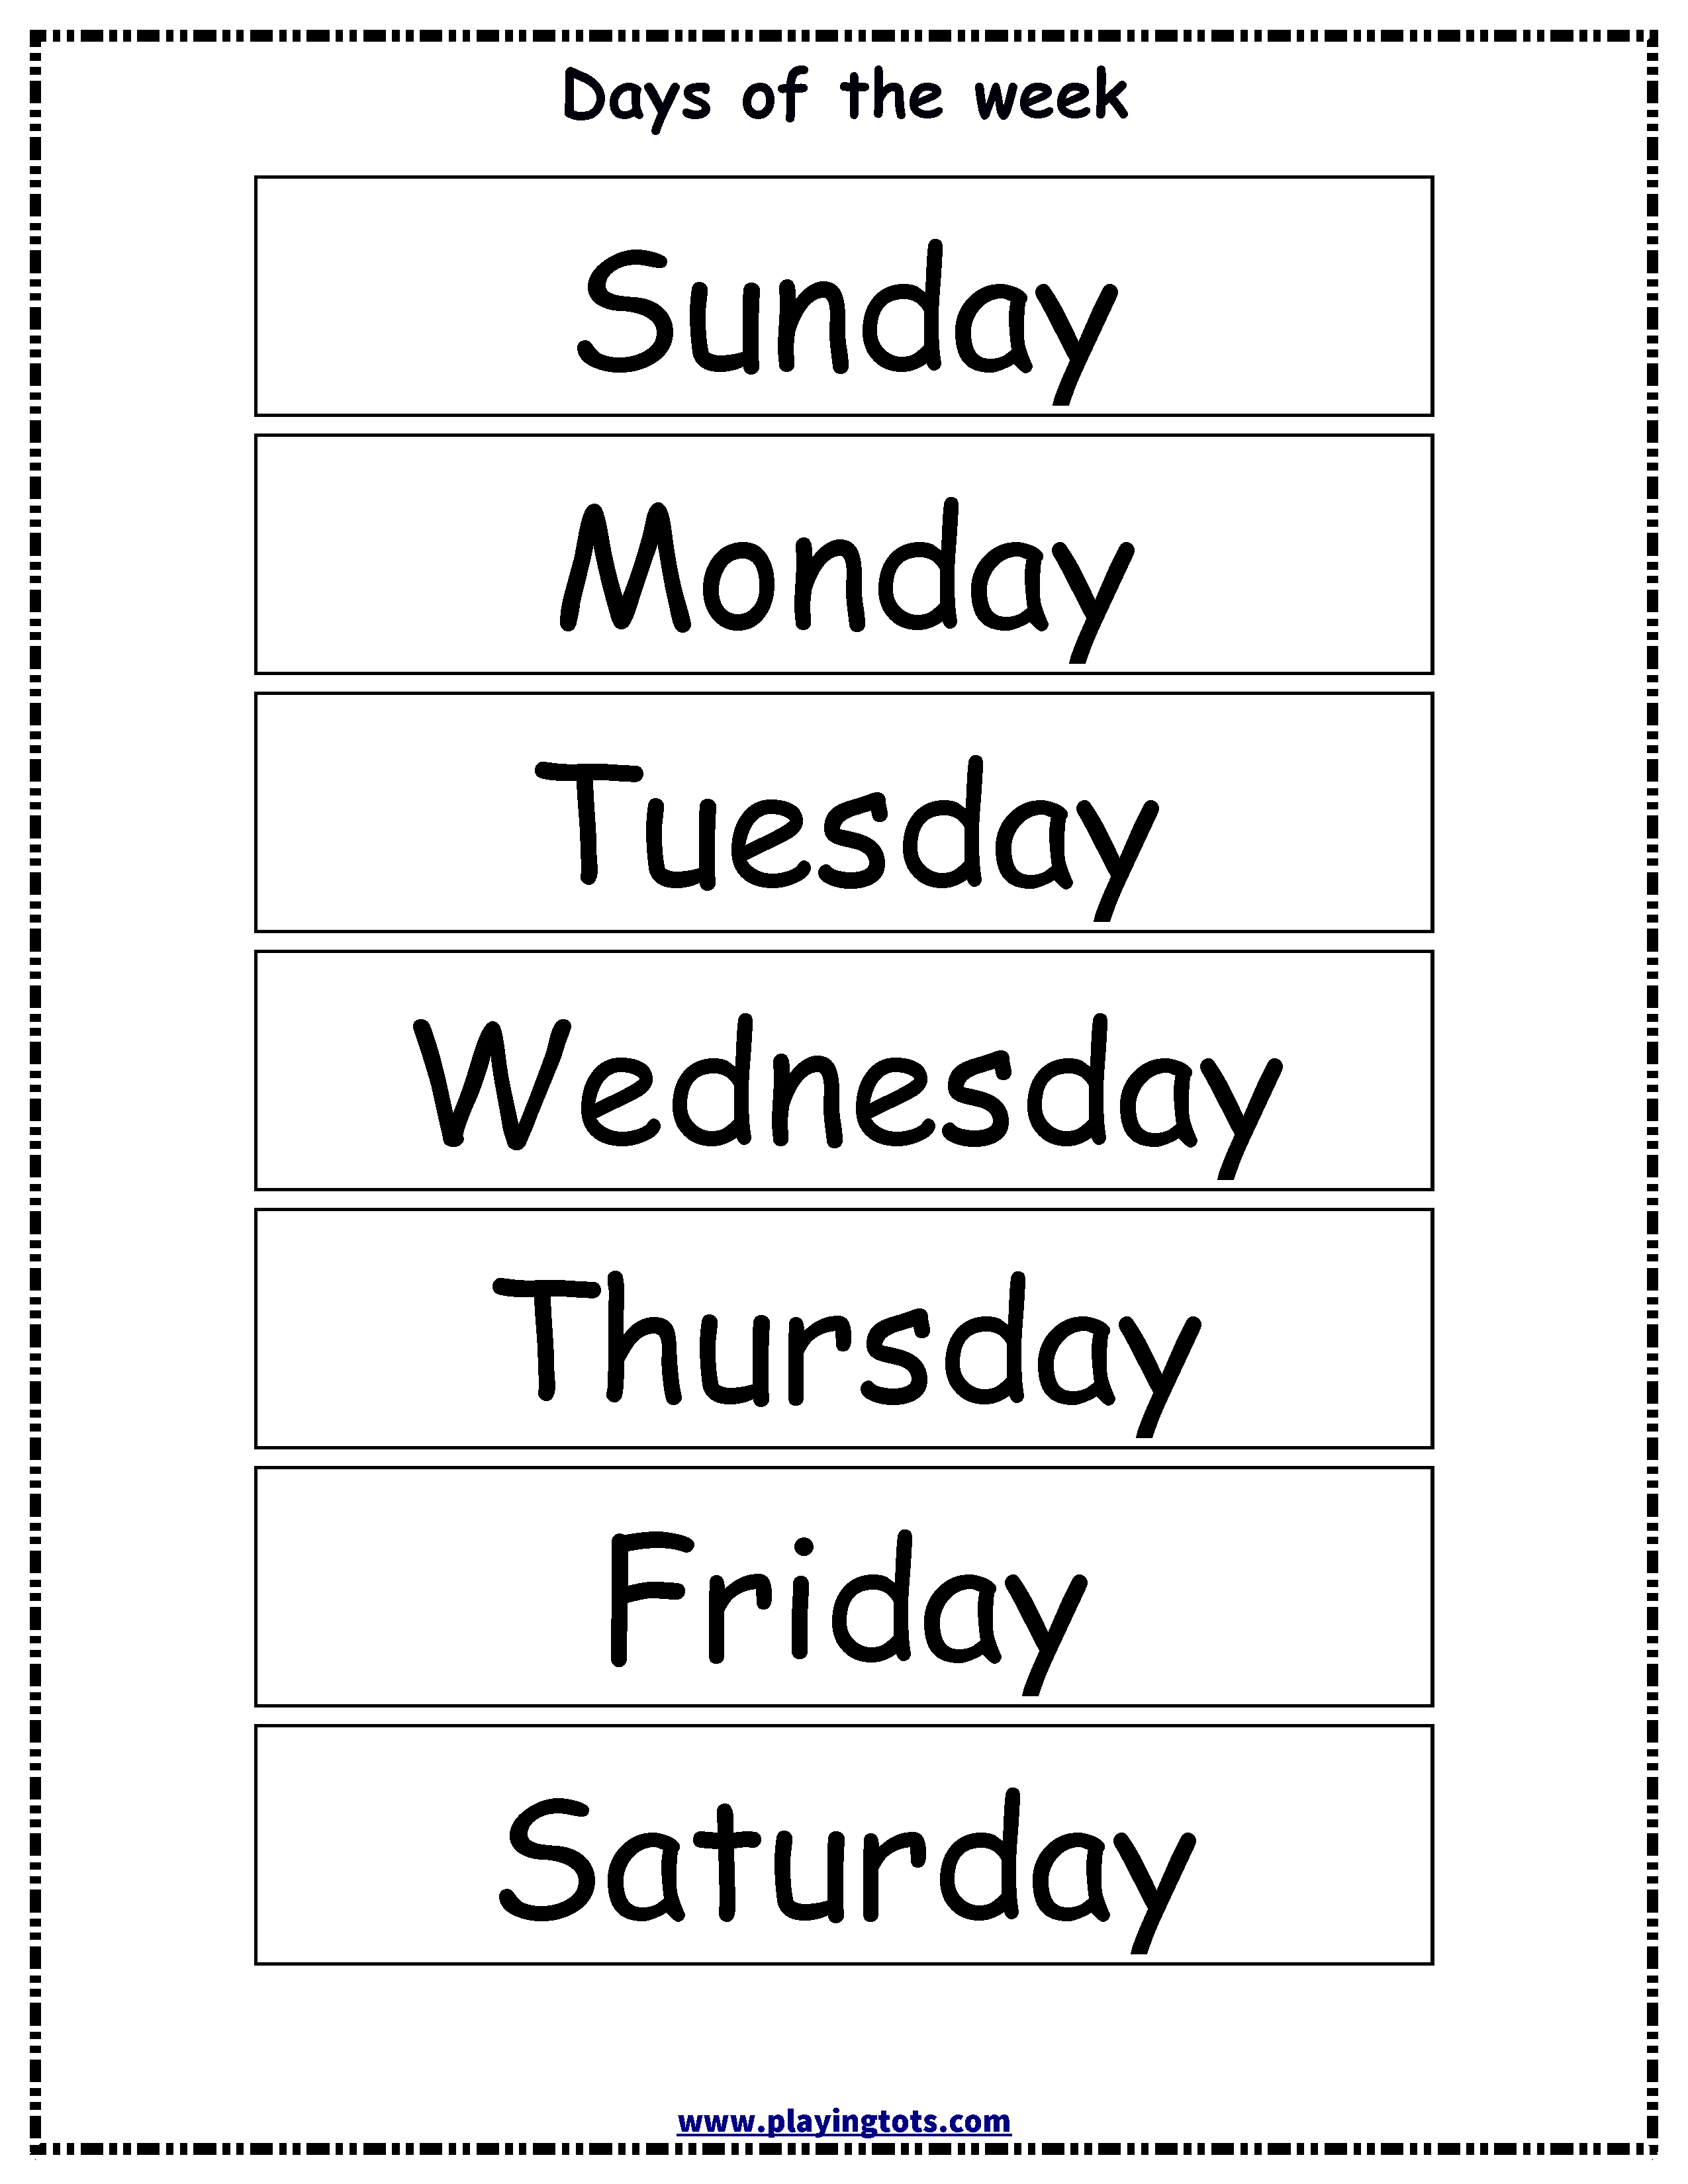 Free Printable Days Of The Week Chart   Classroom Ideas   Flashcards - Free Printable Days Of The Week